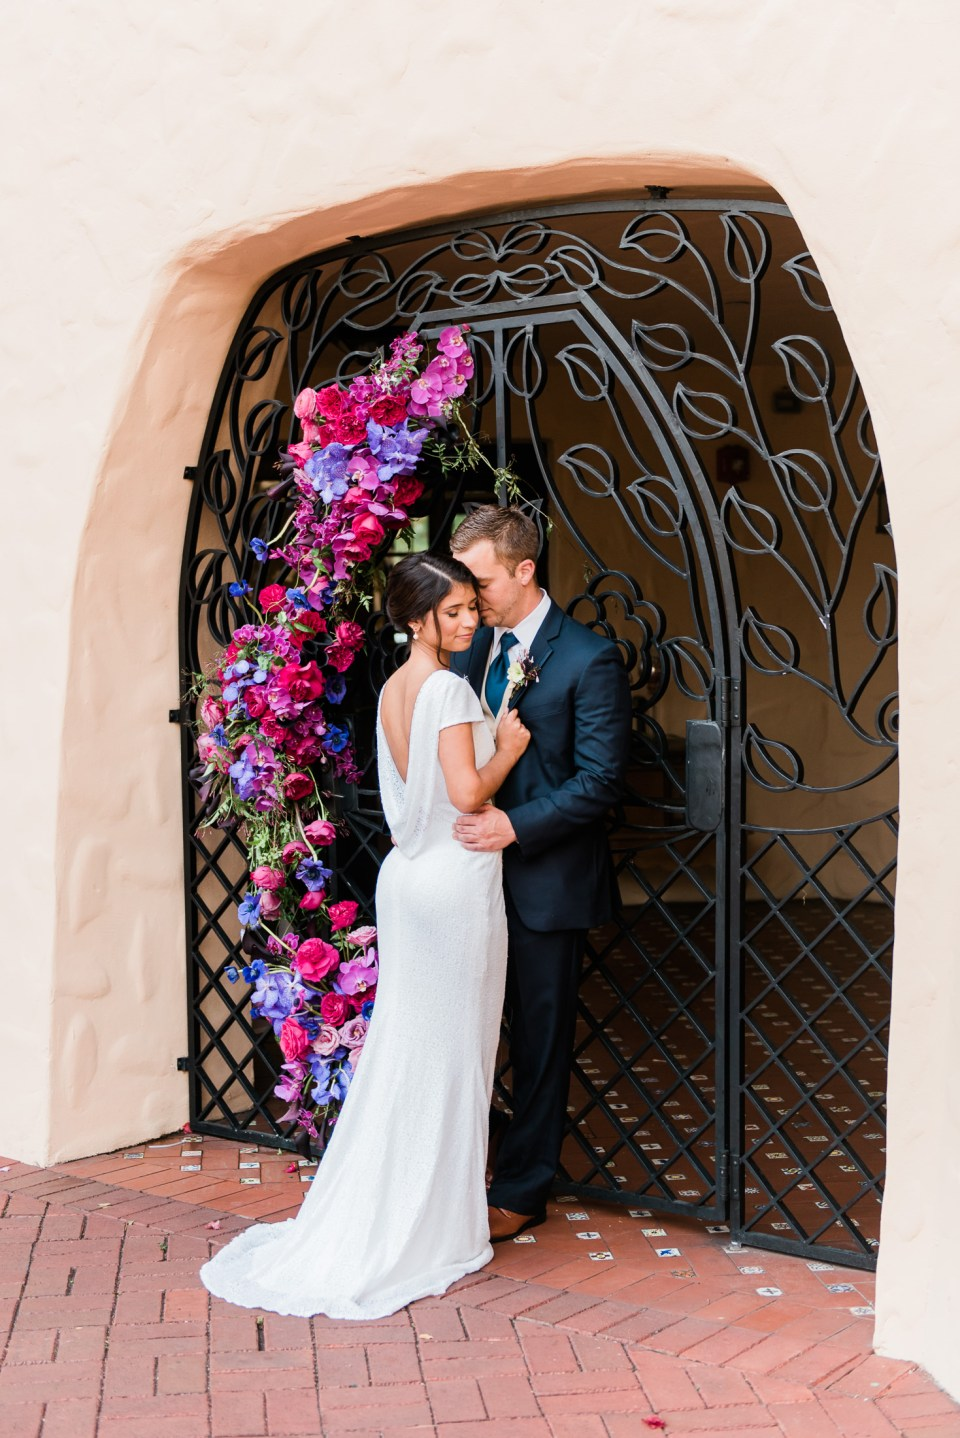 A wedding portrait of a couple under an elaborate floral installation at Curtiss Mansion in Miami Springs, florida